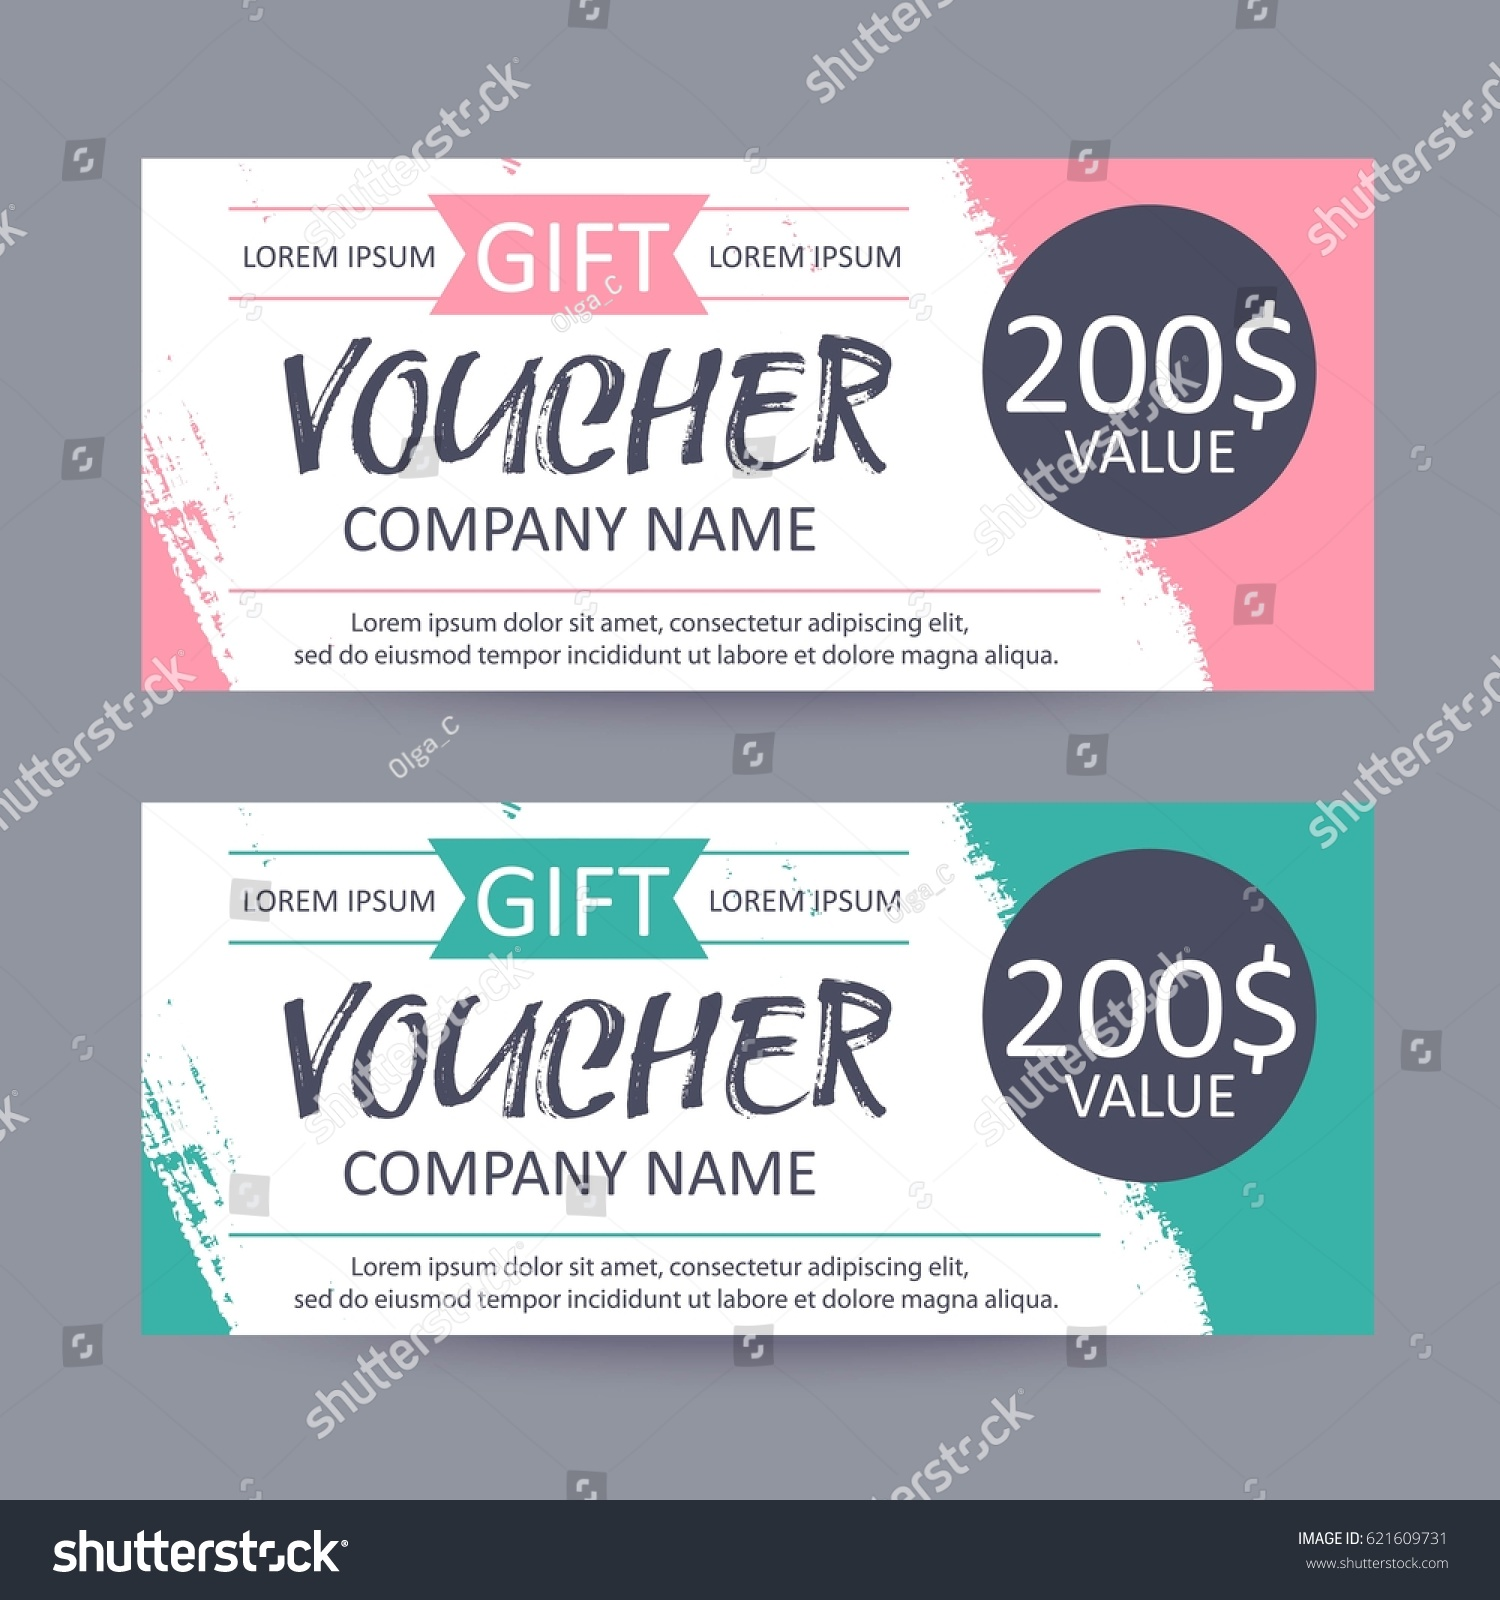 Browse gift cards coupons from CouponCabin. On average, CouponCabin users save $19 in just 90 seconds. Try one of our gift cards coupons codes and save on your next purchase.